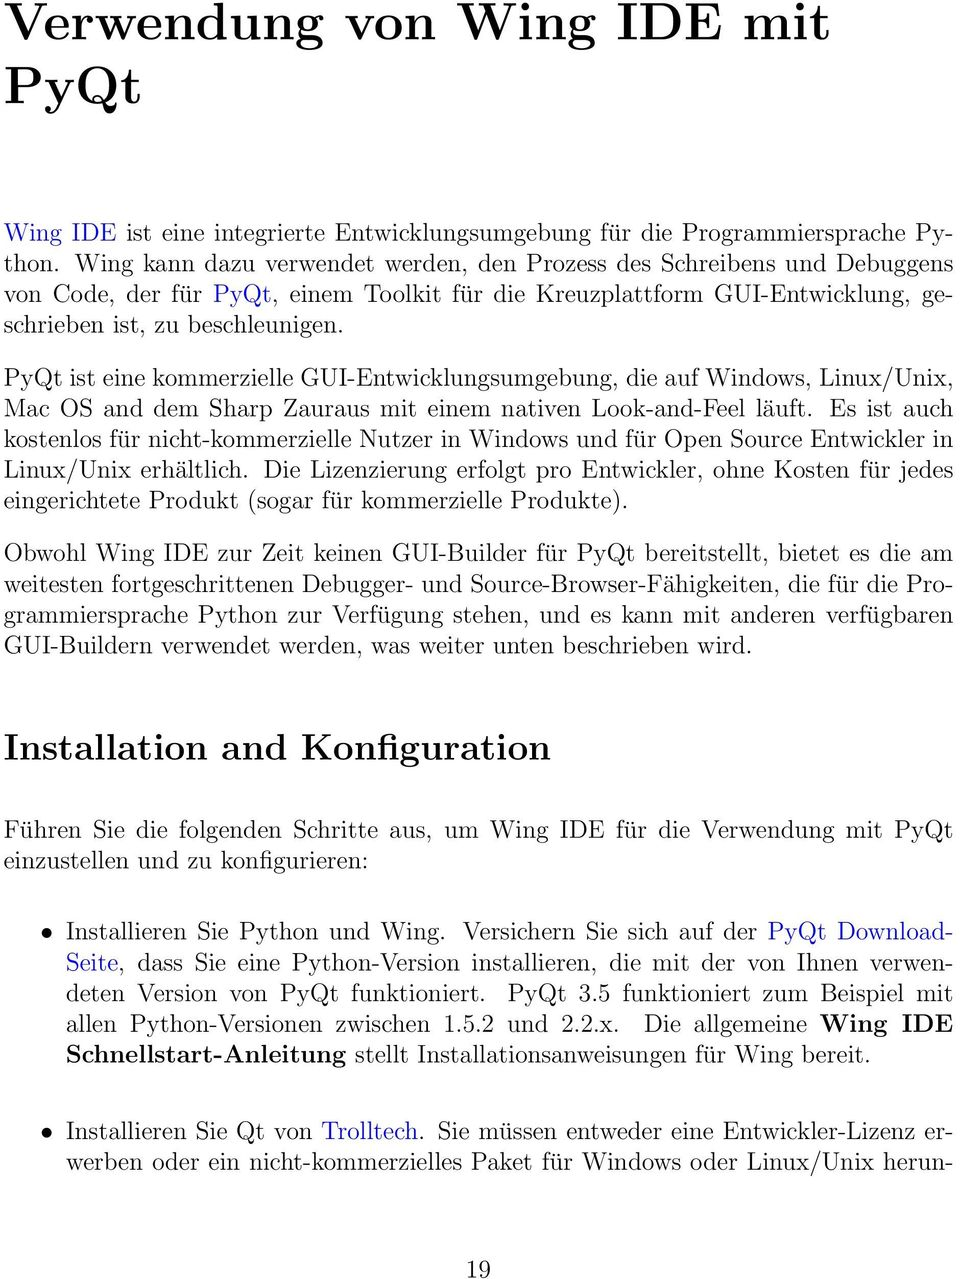 PyQt ist eine kommerzielle GUI-Entwicklungsumgebung, die auf Windows, Linux/Unix, Mac OS and dem Sharp Zauraus mit einem nativen Look-and-Feel läuft.